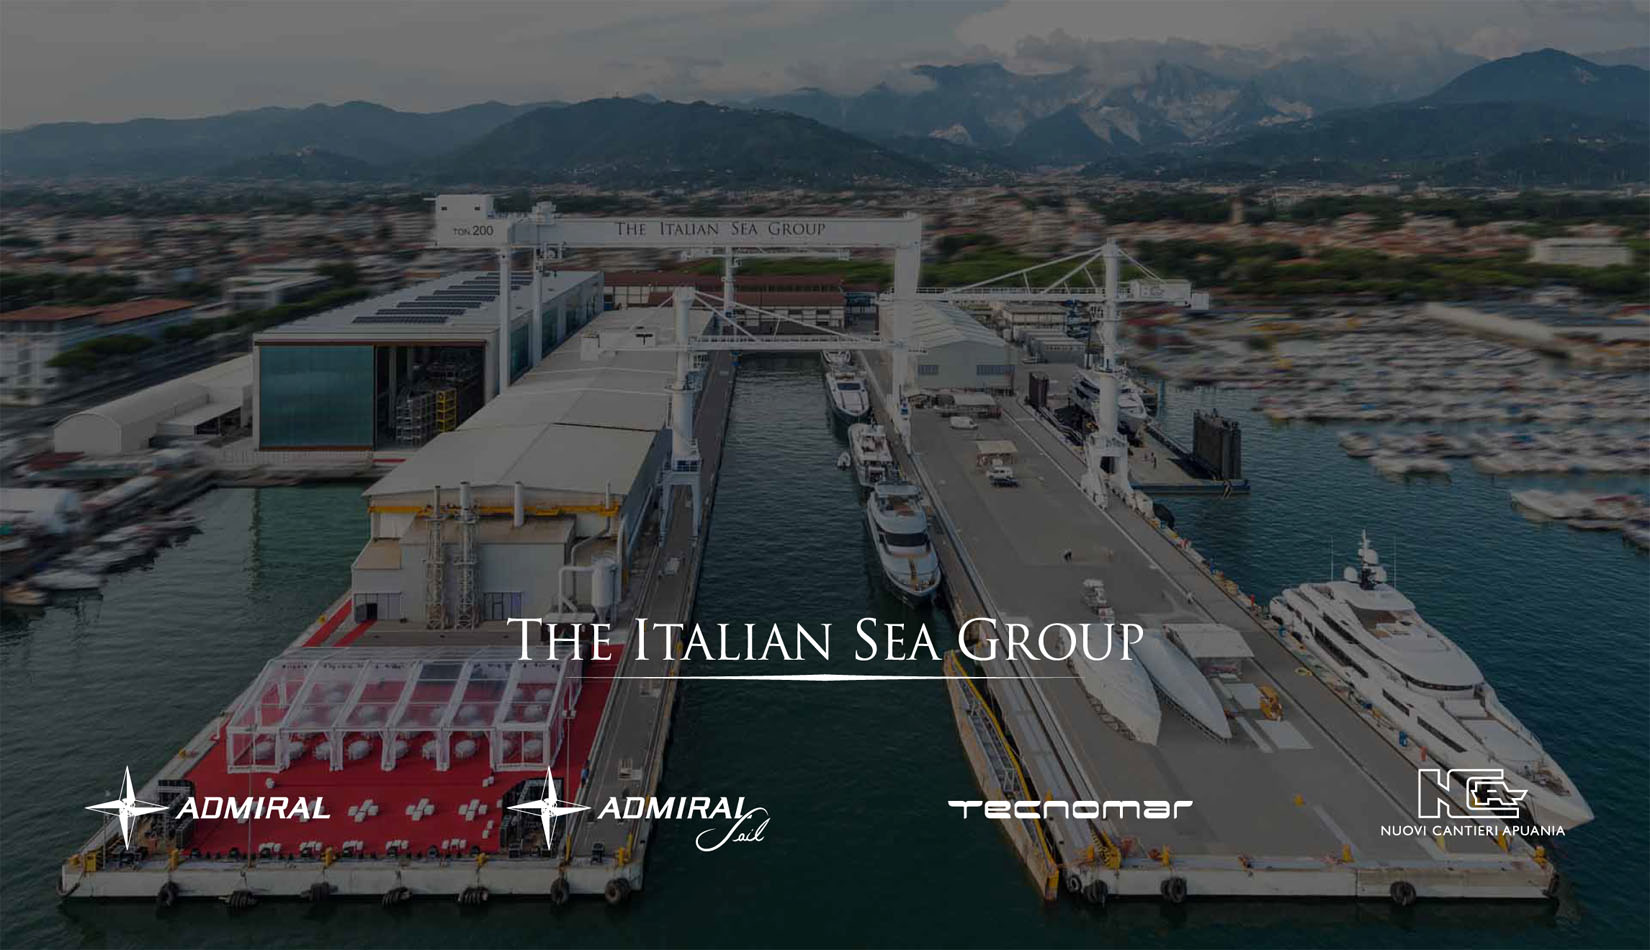 The Italian Sea Group